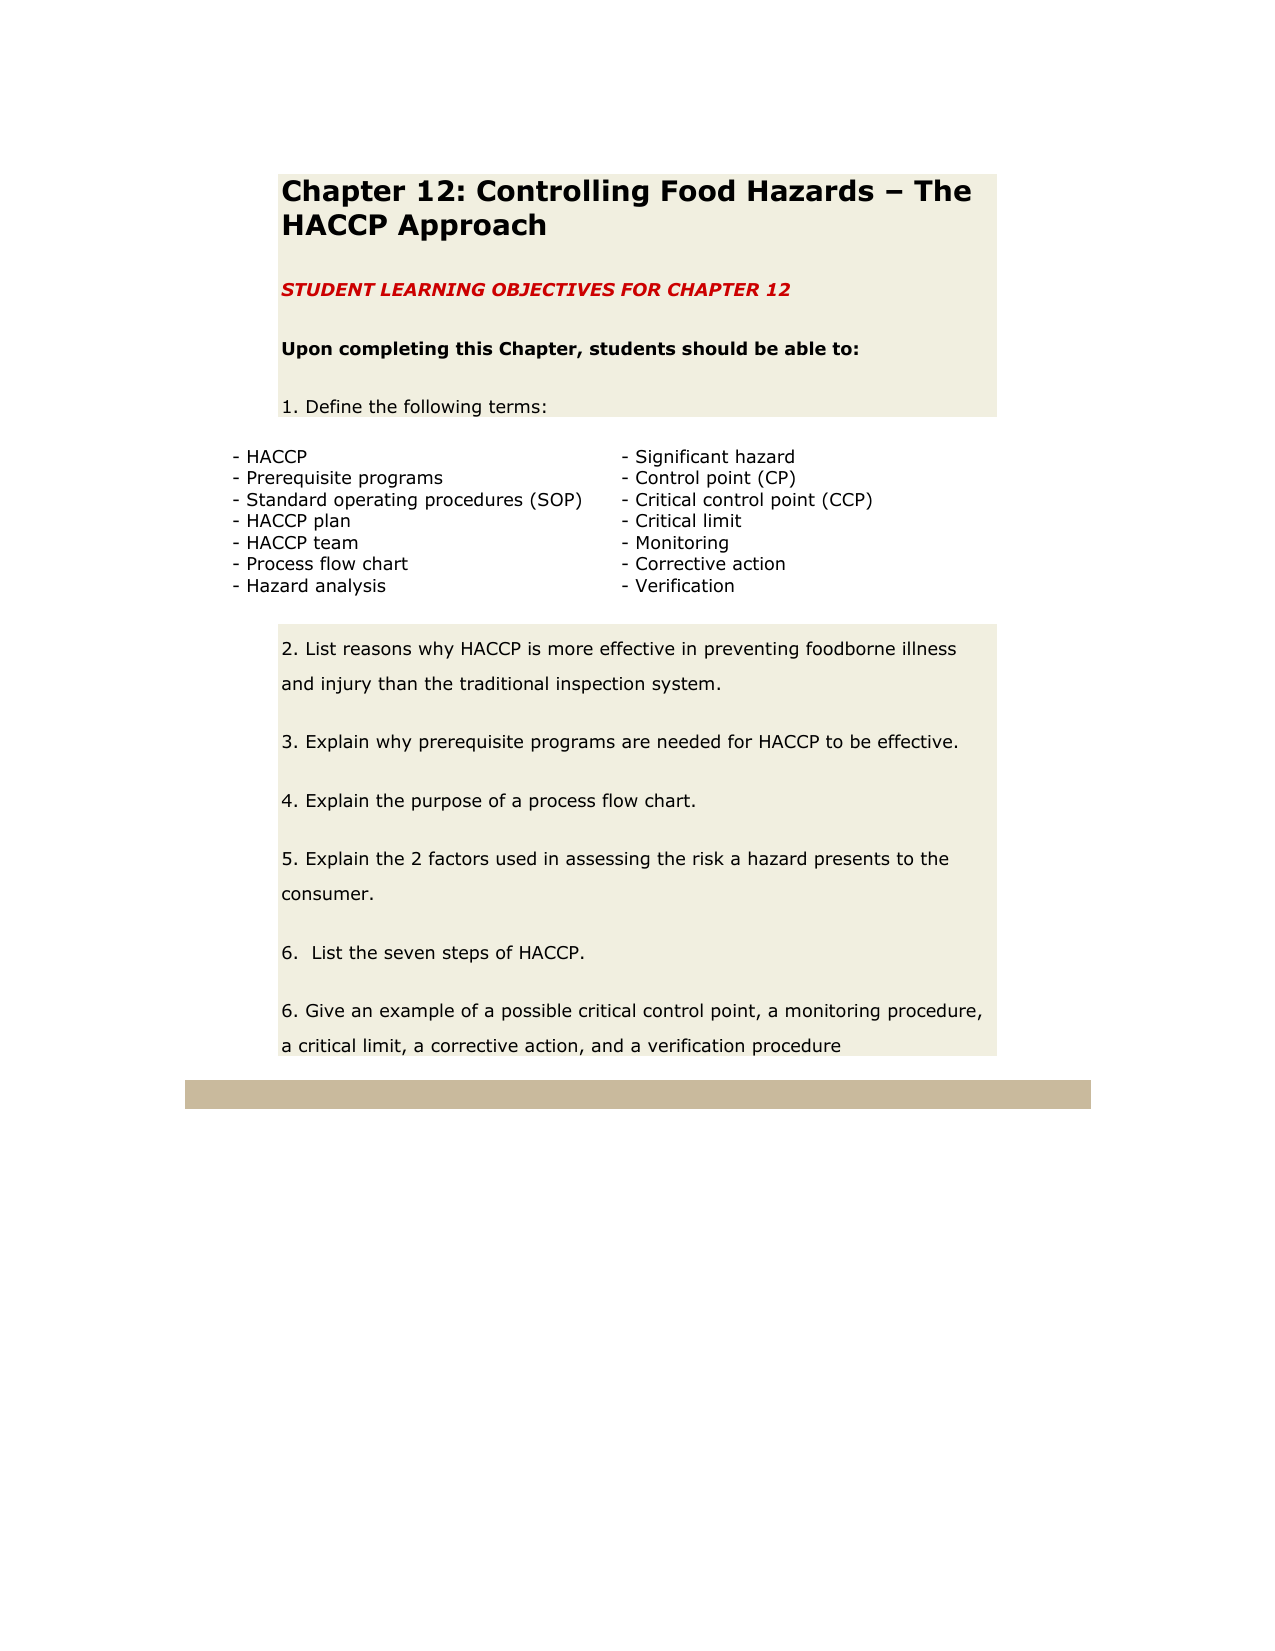 Chapter 12 Controlling Food Hazards The Haccp Approach